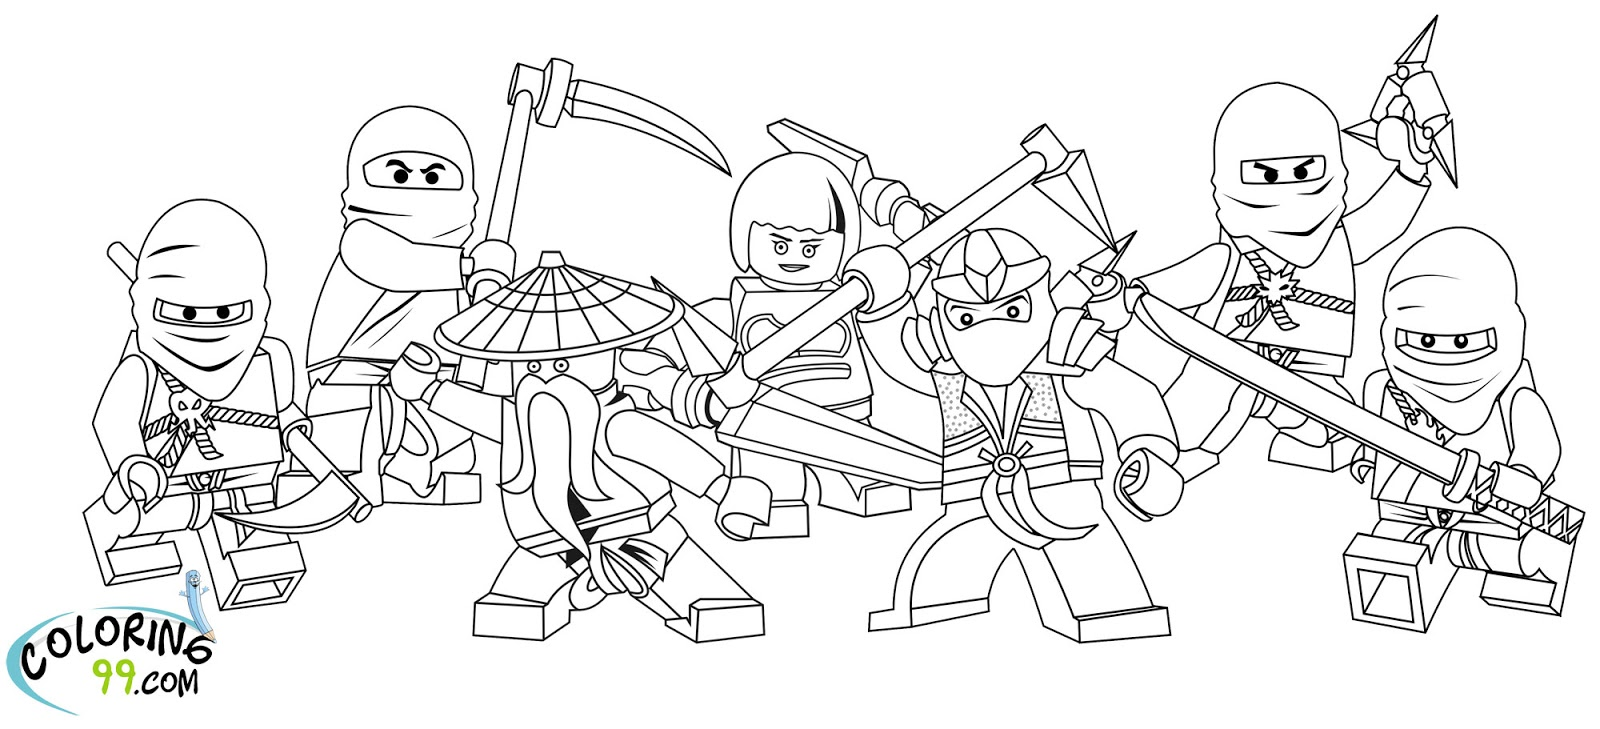 Sizzling image within lego printable coloring pages